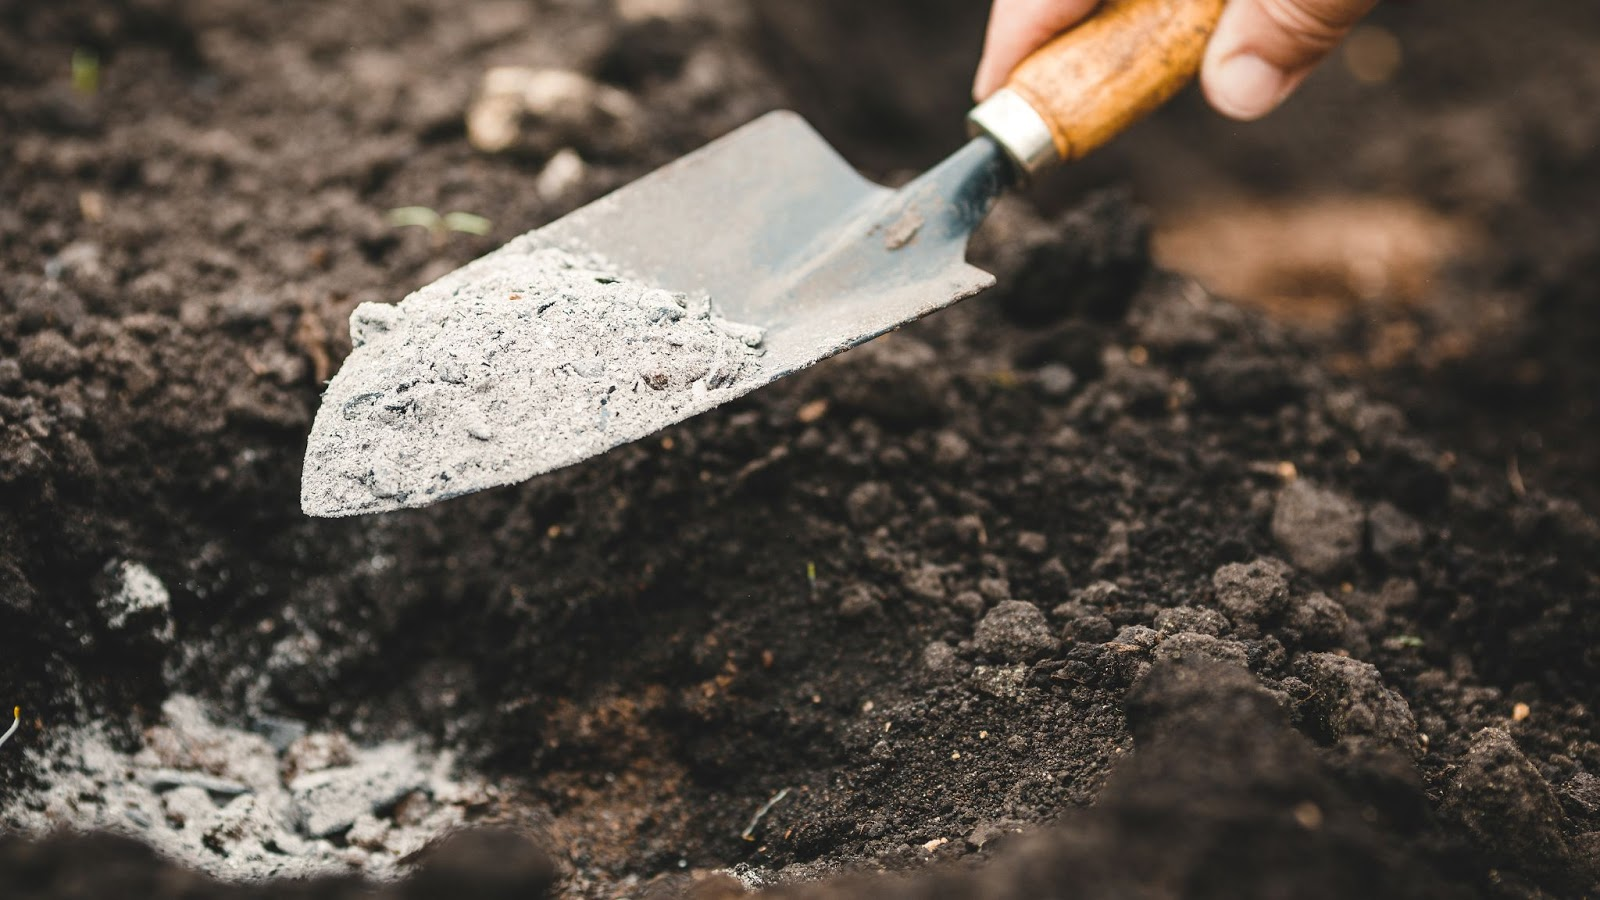 Image of a hand using a garden trowel during tree fertilization services to add gray powdered fertilizer into a hole in brown soil.